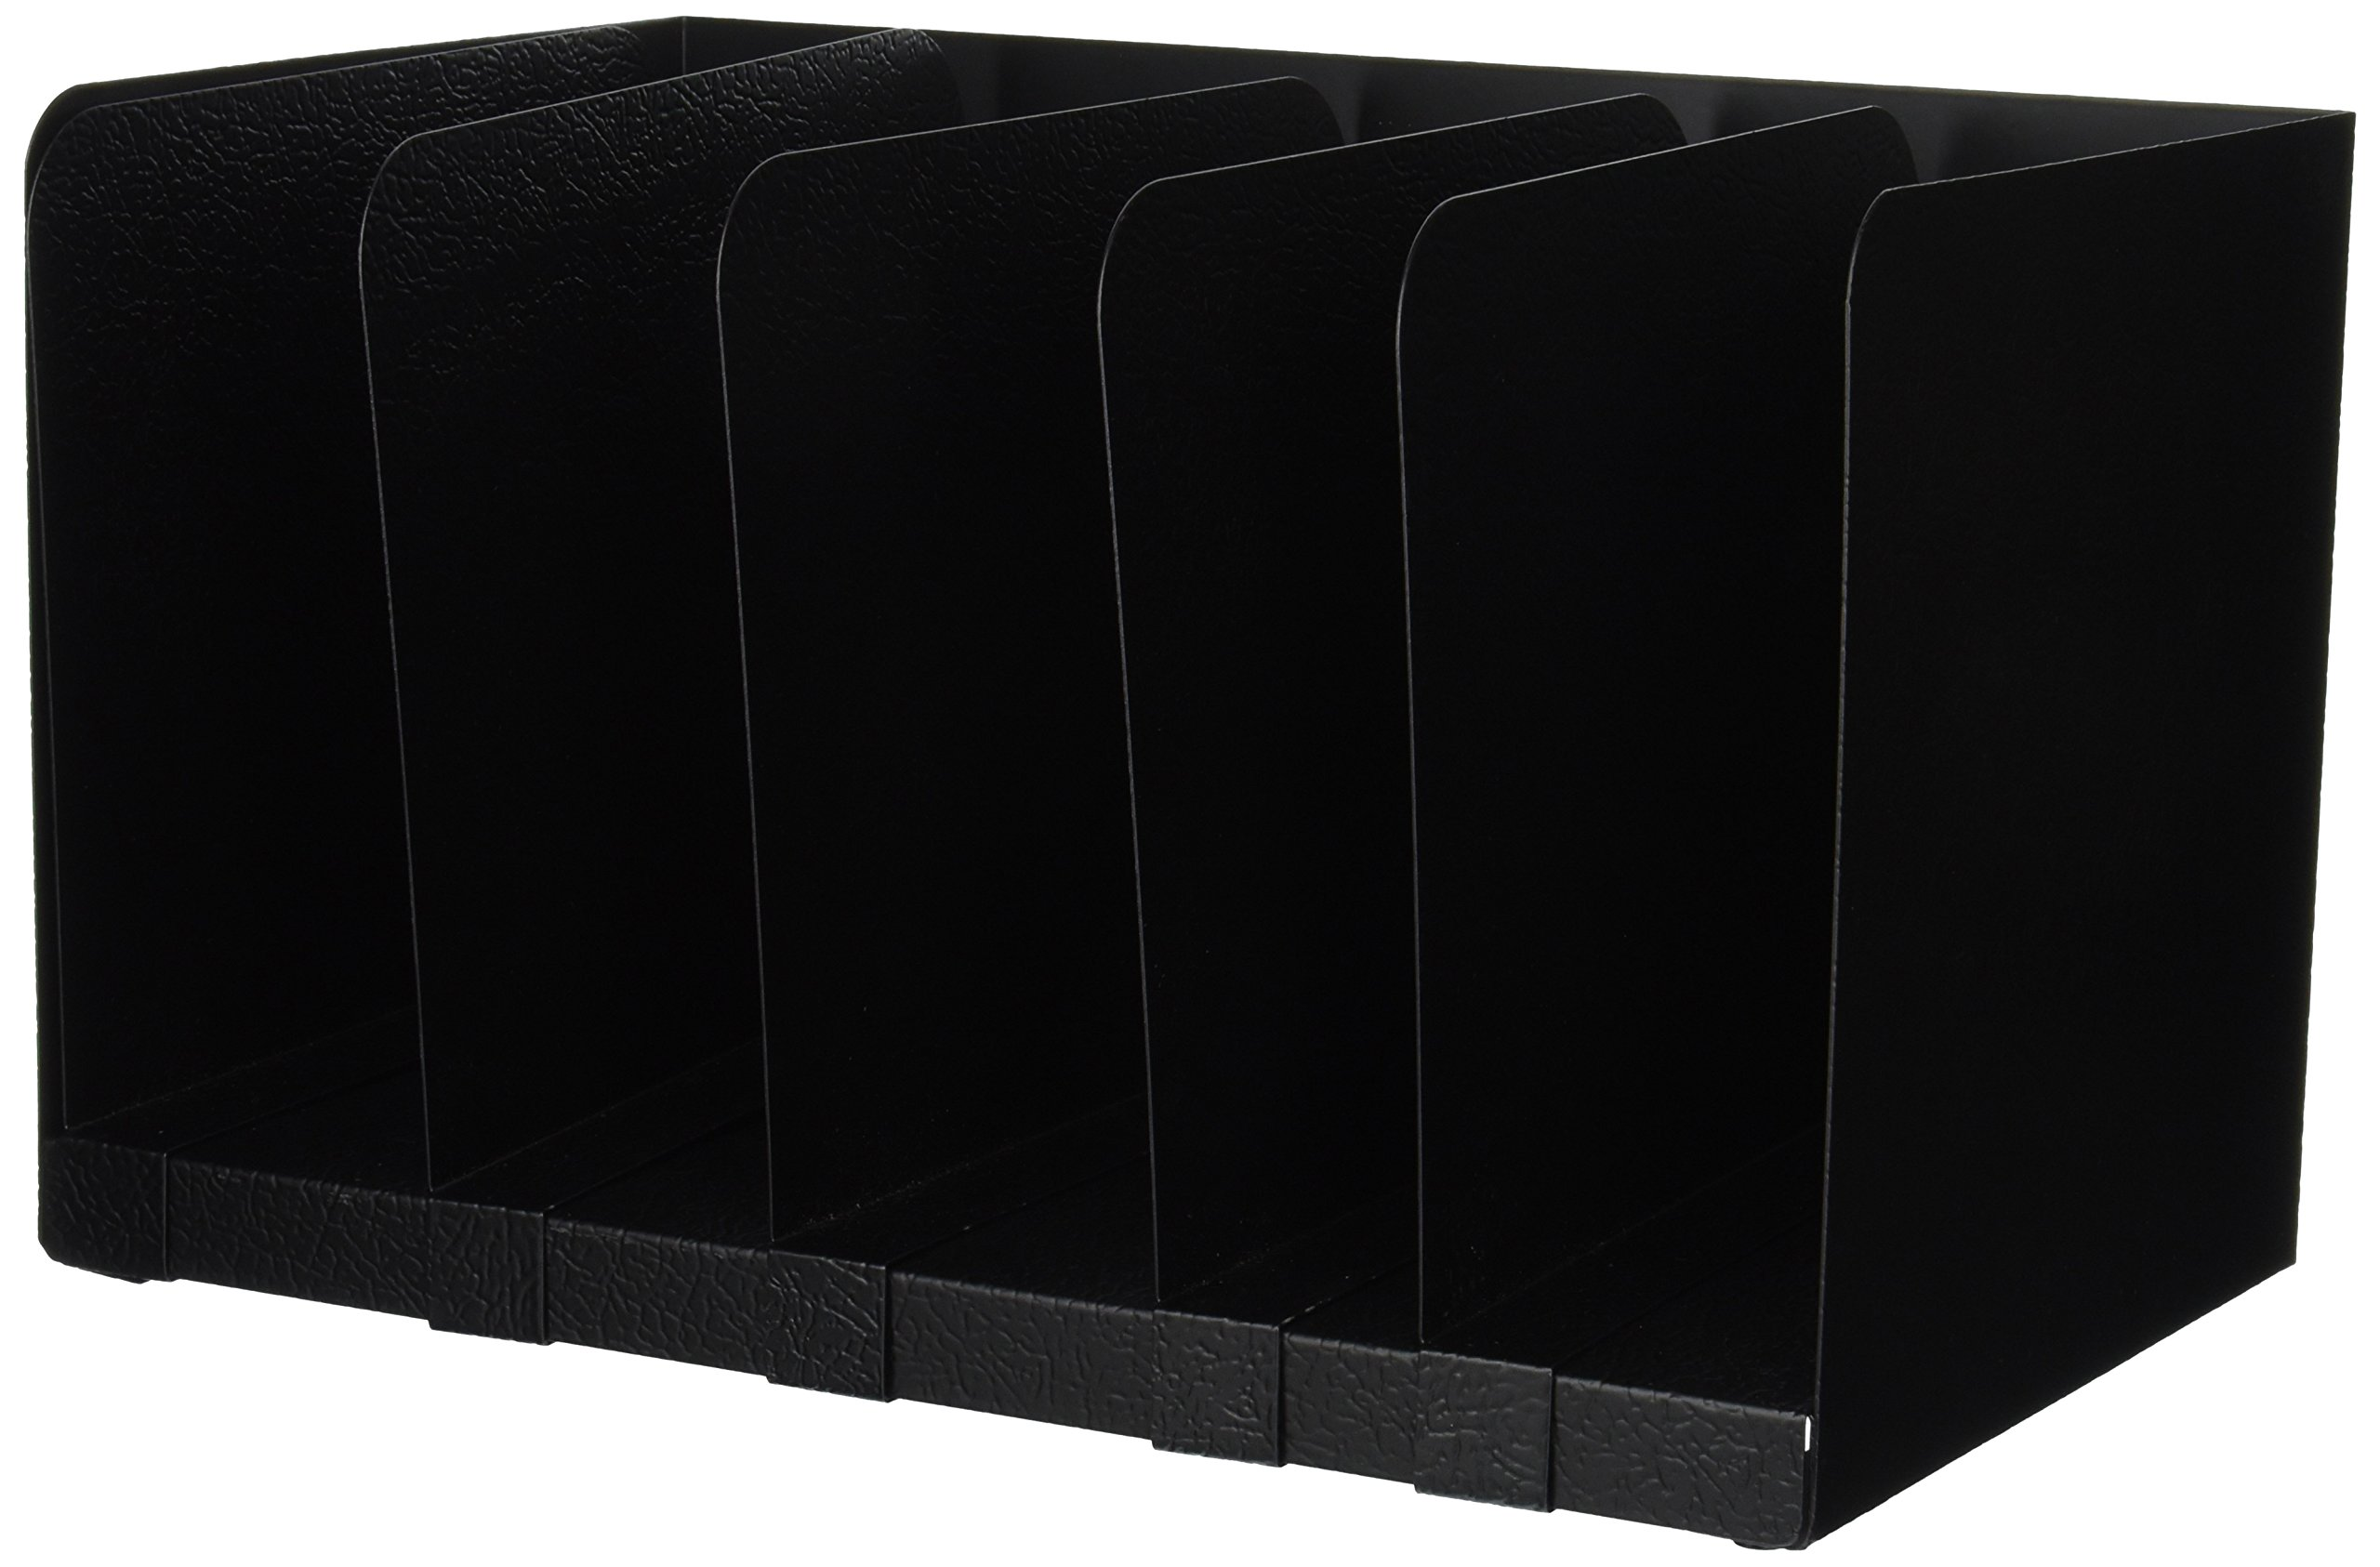 Buddy Products Adjustable Book Rack, Steel, 9.25 x 9.25 x 15 Inches, Black (0570-4)